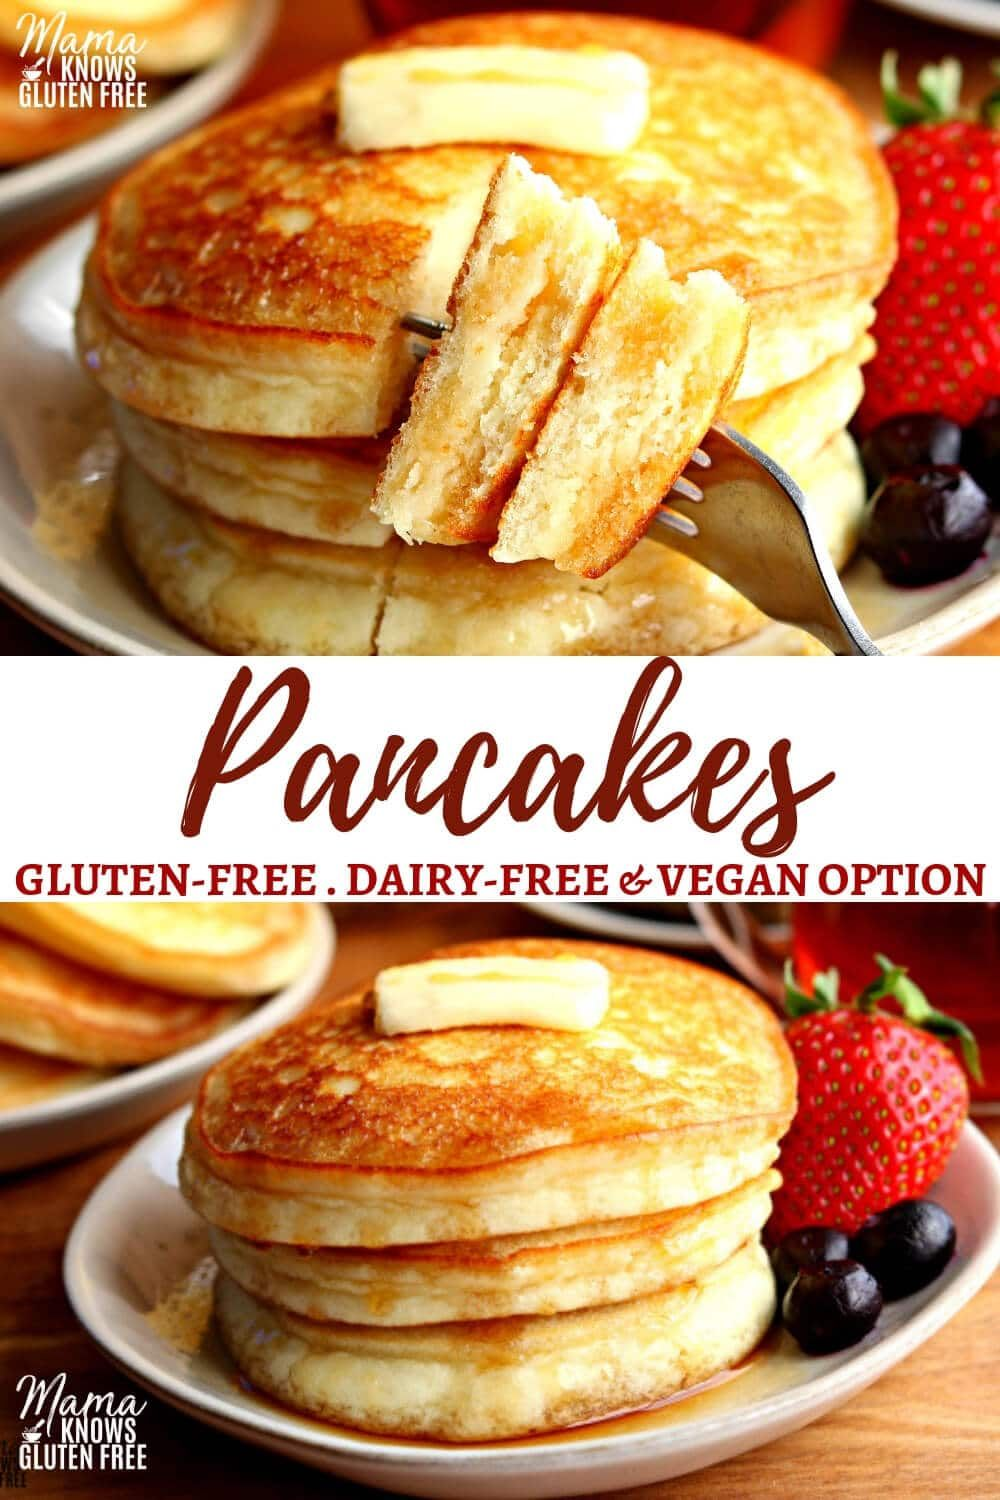 An easy gluten-free pancake recipe with a dairy-free and Vegan option. A gluten-free pancake mix made with a few simple ingredients that make fluffy pancakes every time! #glutenfreerecipe #pancakes #glutenfree